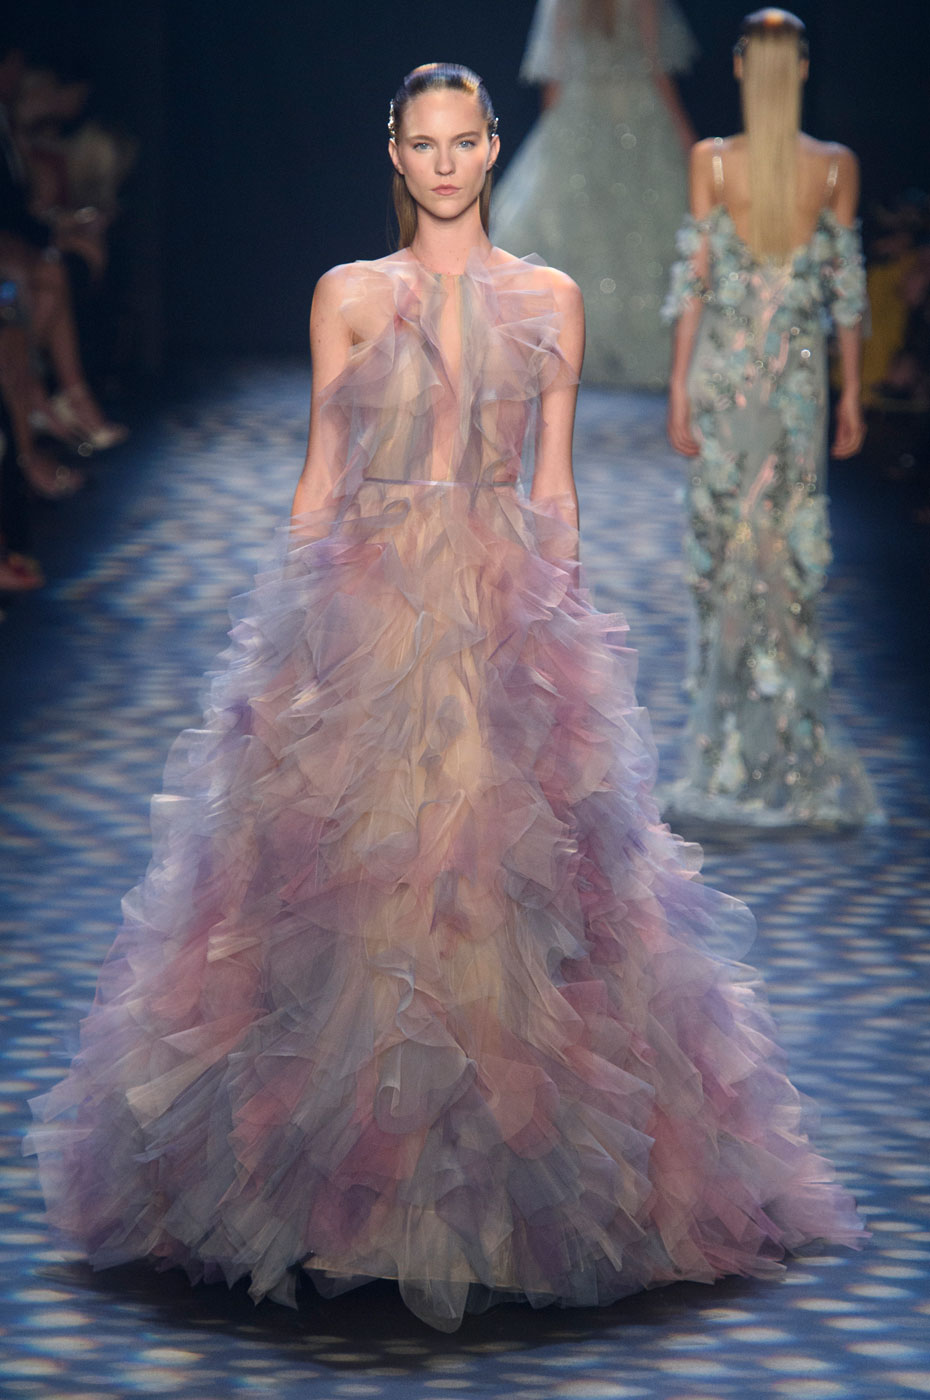 Marchesa's Lyrical Spring 2017 Collection Contains Some True Magic